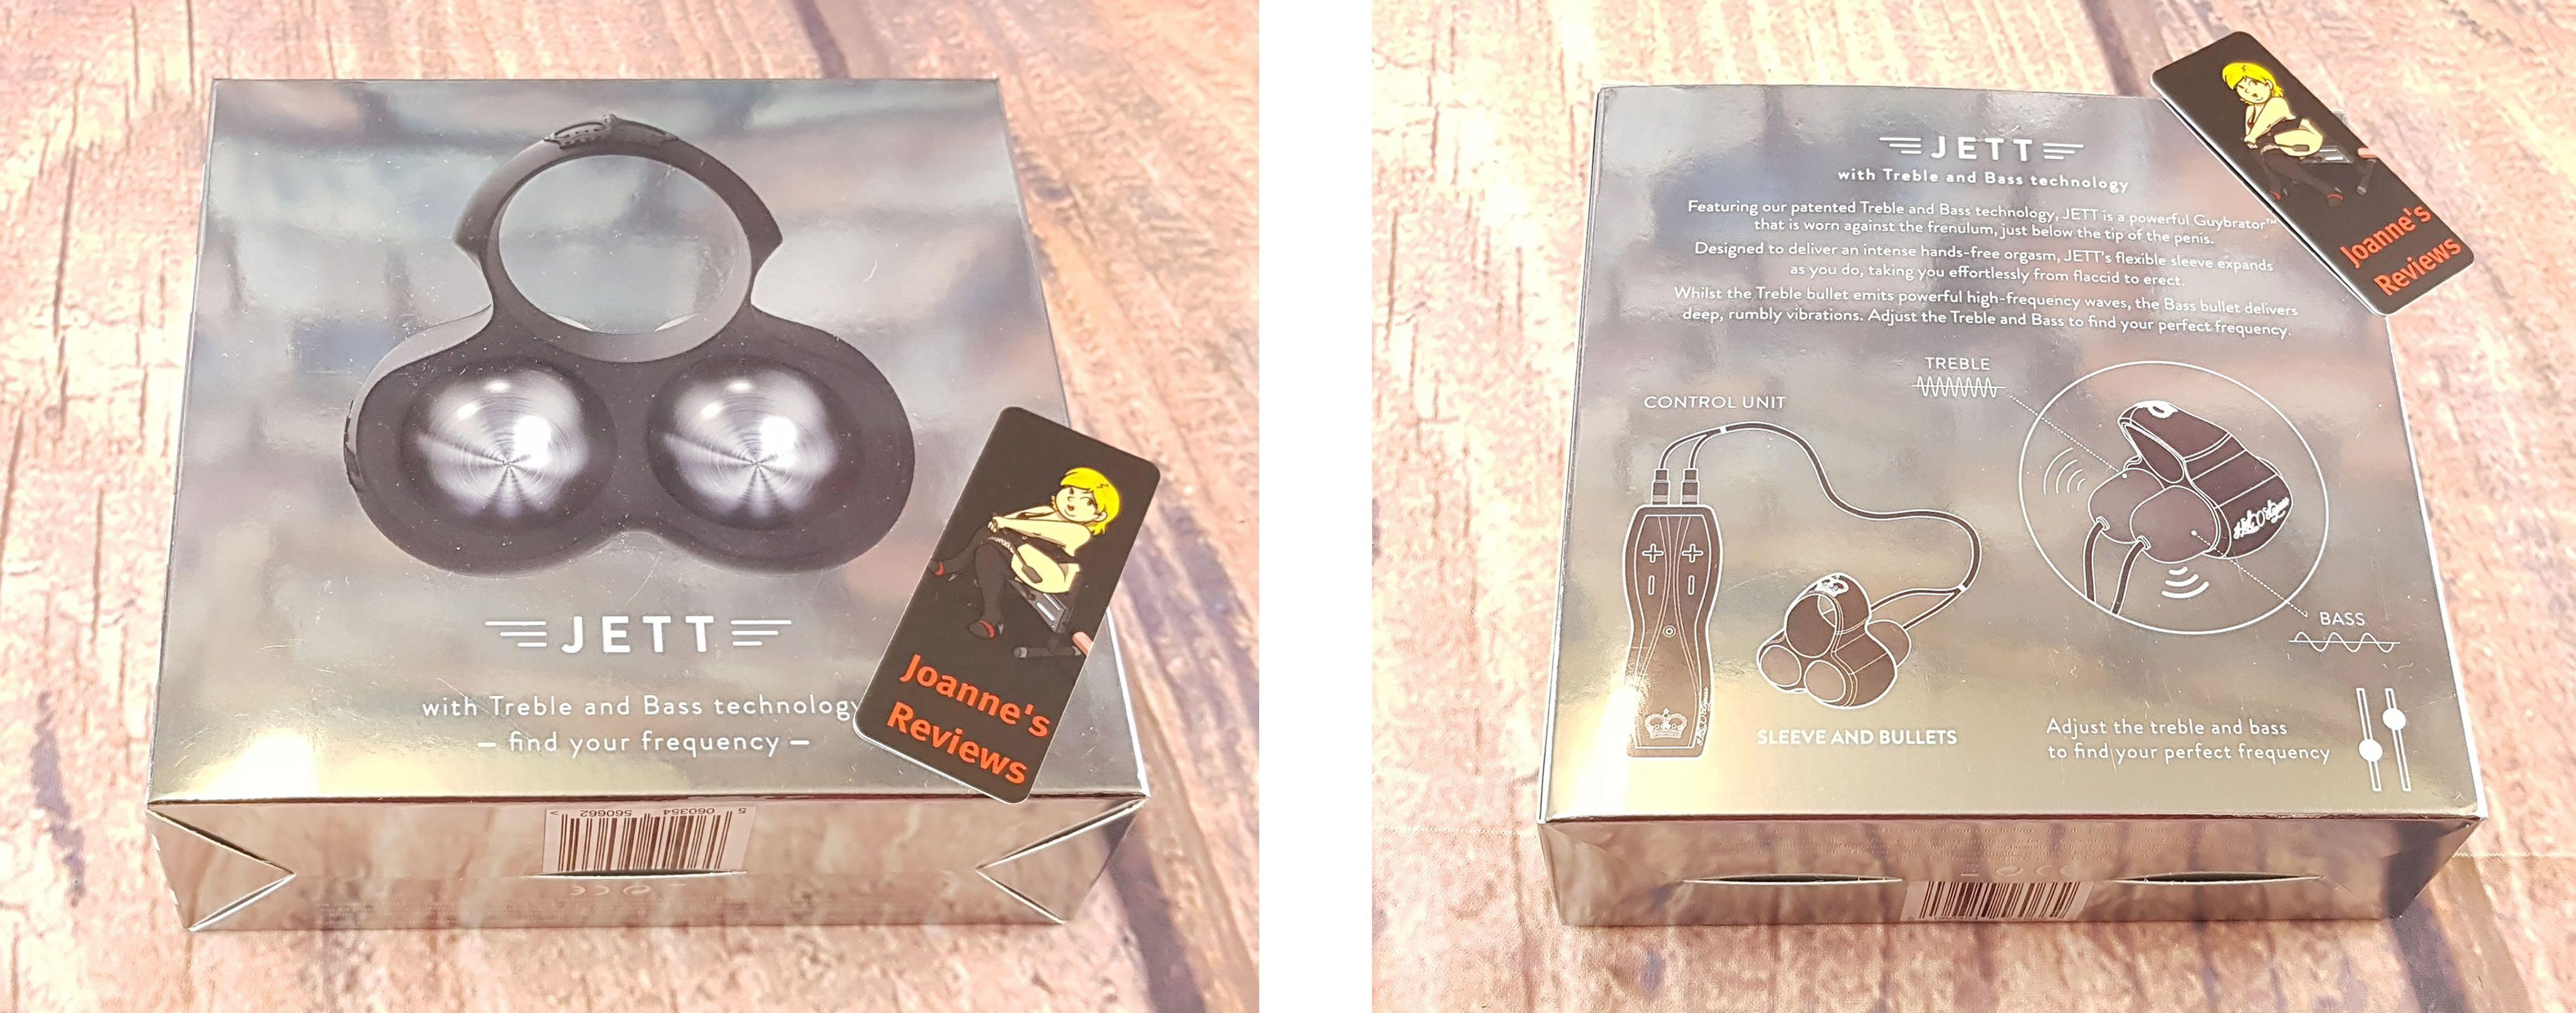 Image showing the stunning packaging of the Hot Octopuss JETT Guybrator